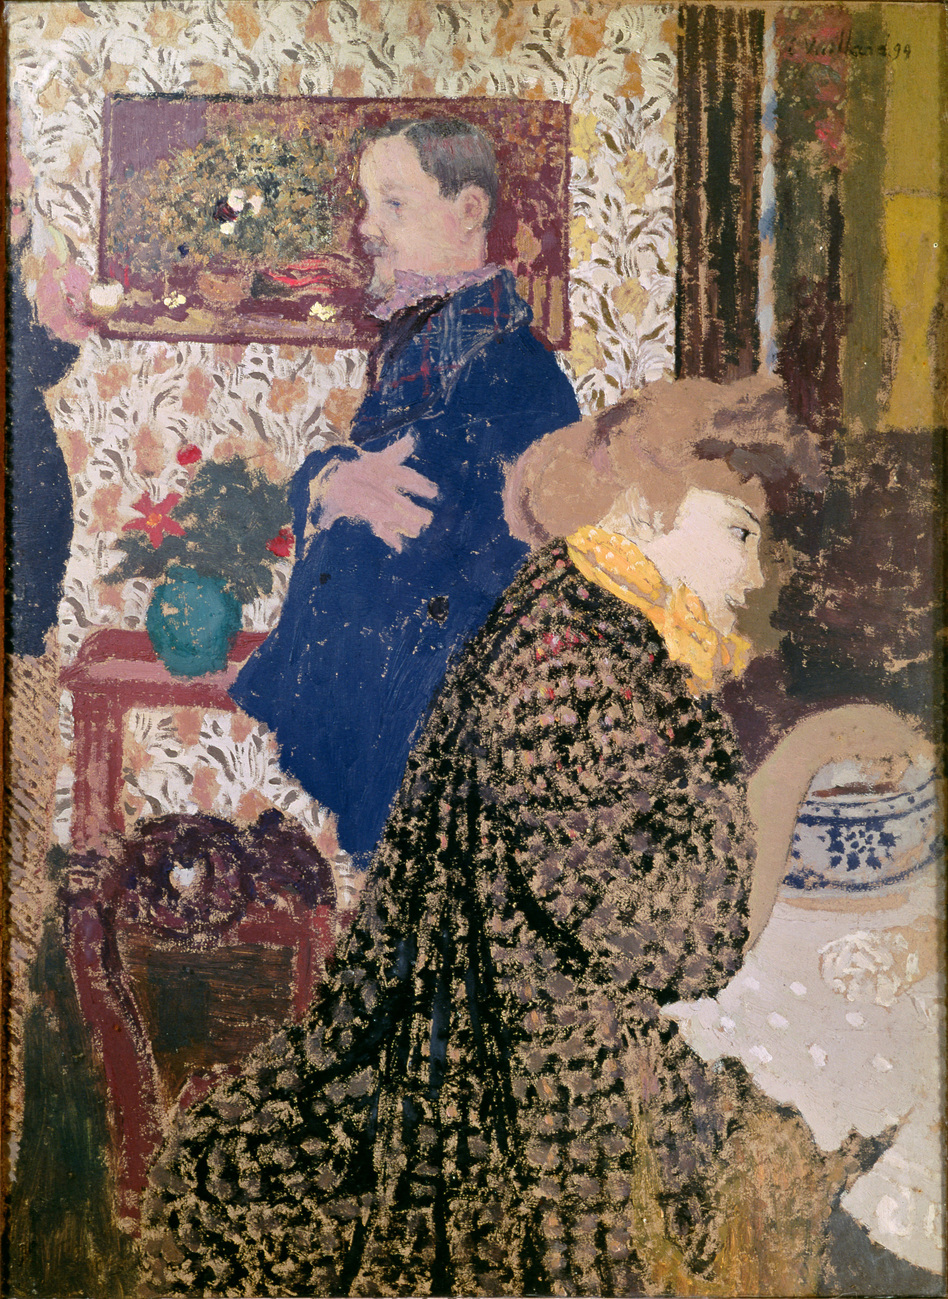 Vuillard depicts Misia Natanson and artist Felix Vallotton in this 1899 oil on cardboard: Vallotton and Misia in the Dining Room at Rue Saint-Florentin. (Courtesy The Jewish Museum)